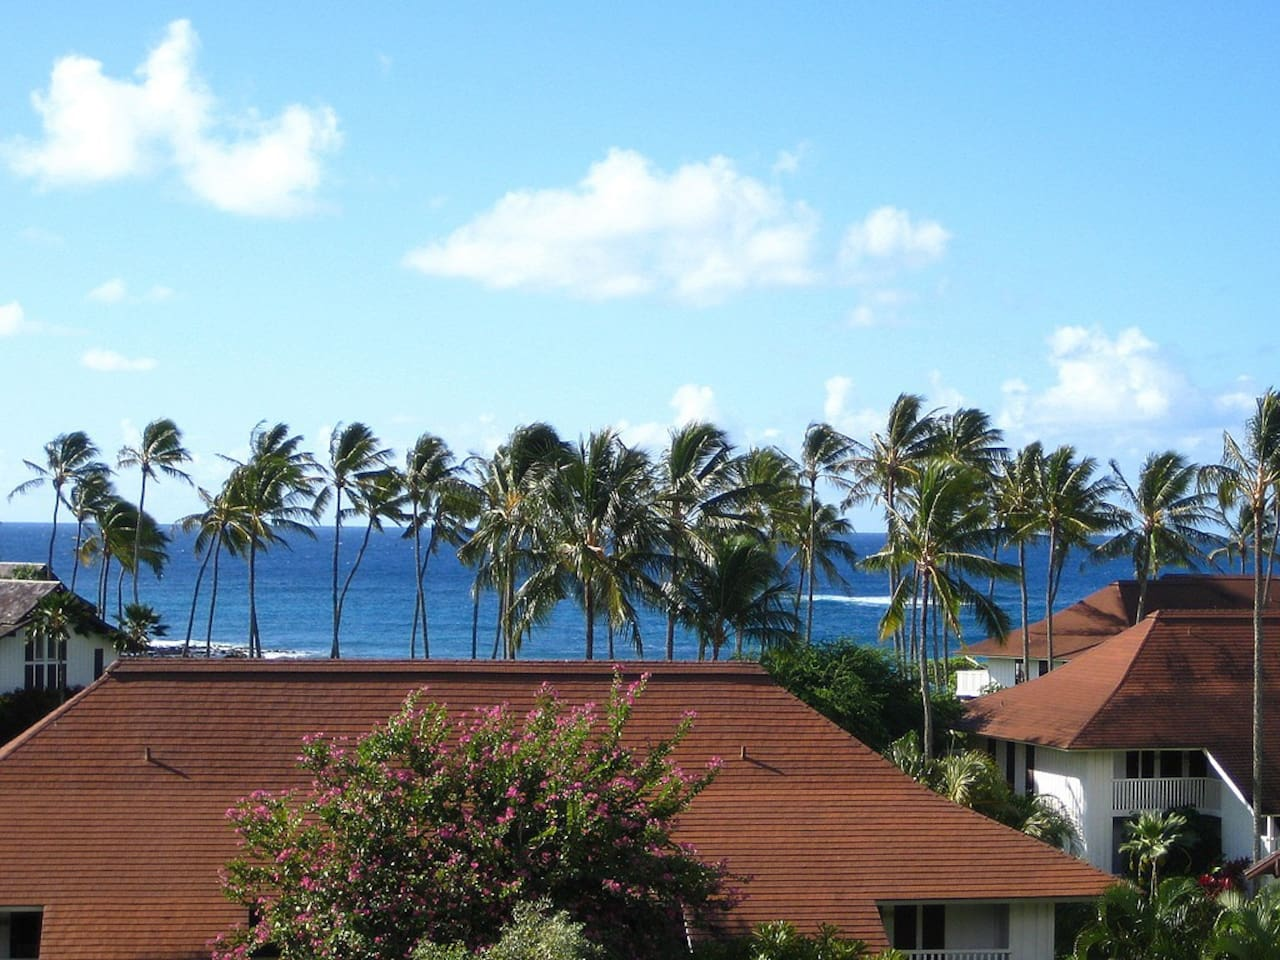 The view of the ocean from the lanai